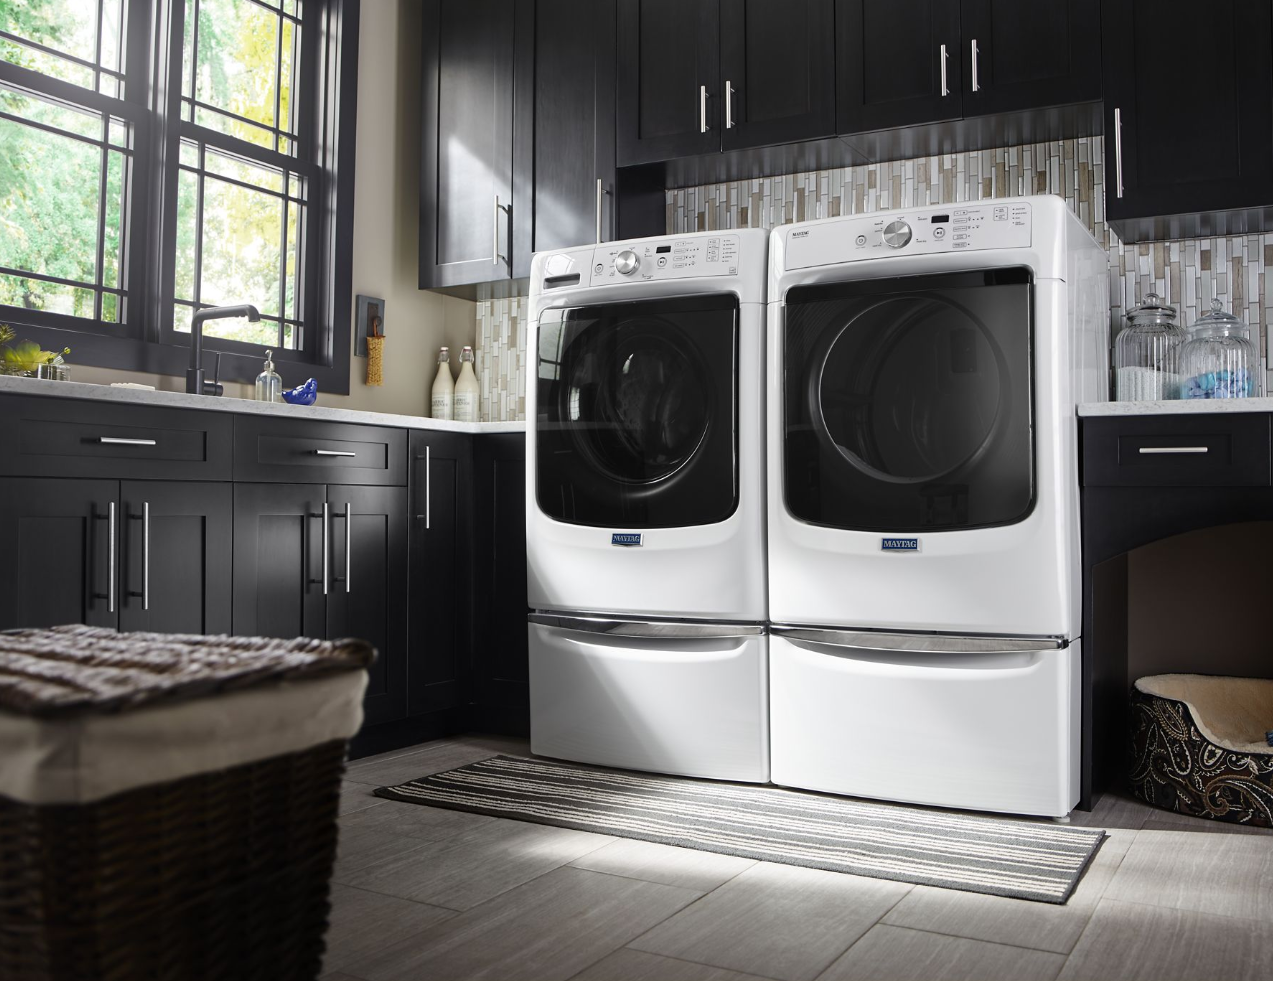 Maytag energy efficient washing machine-1